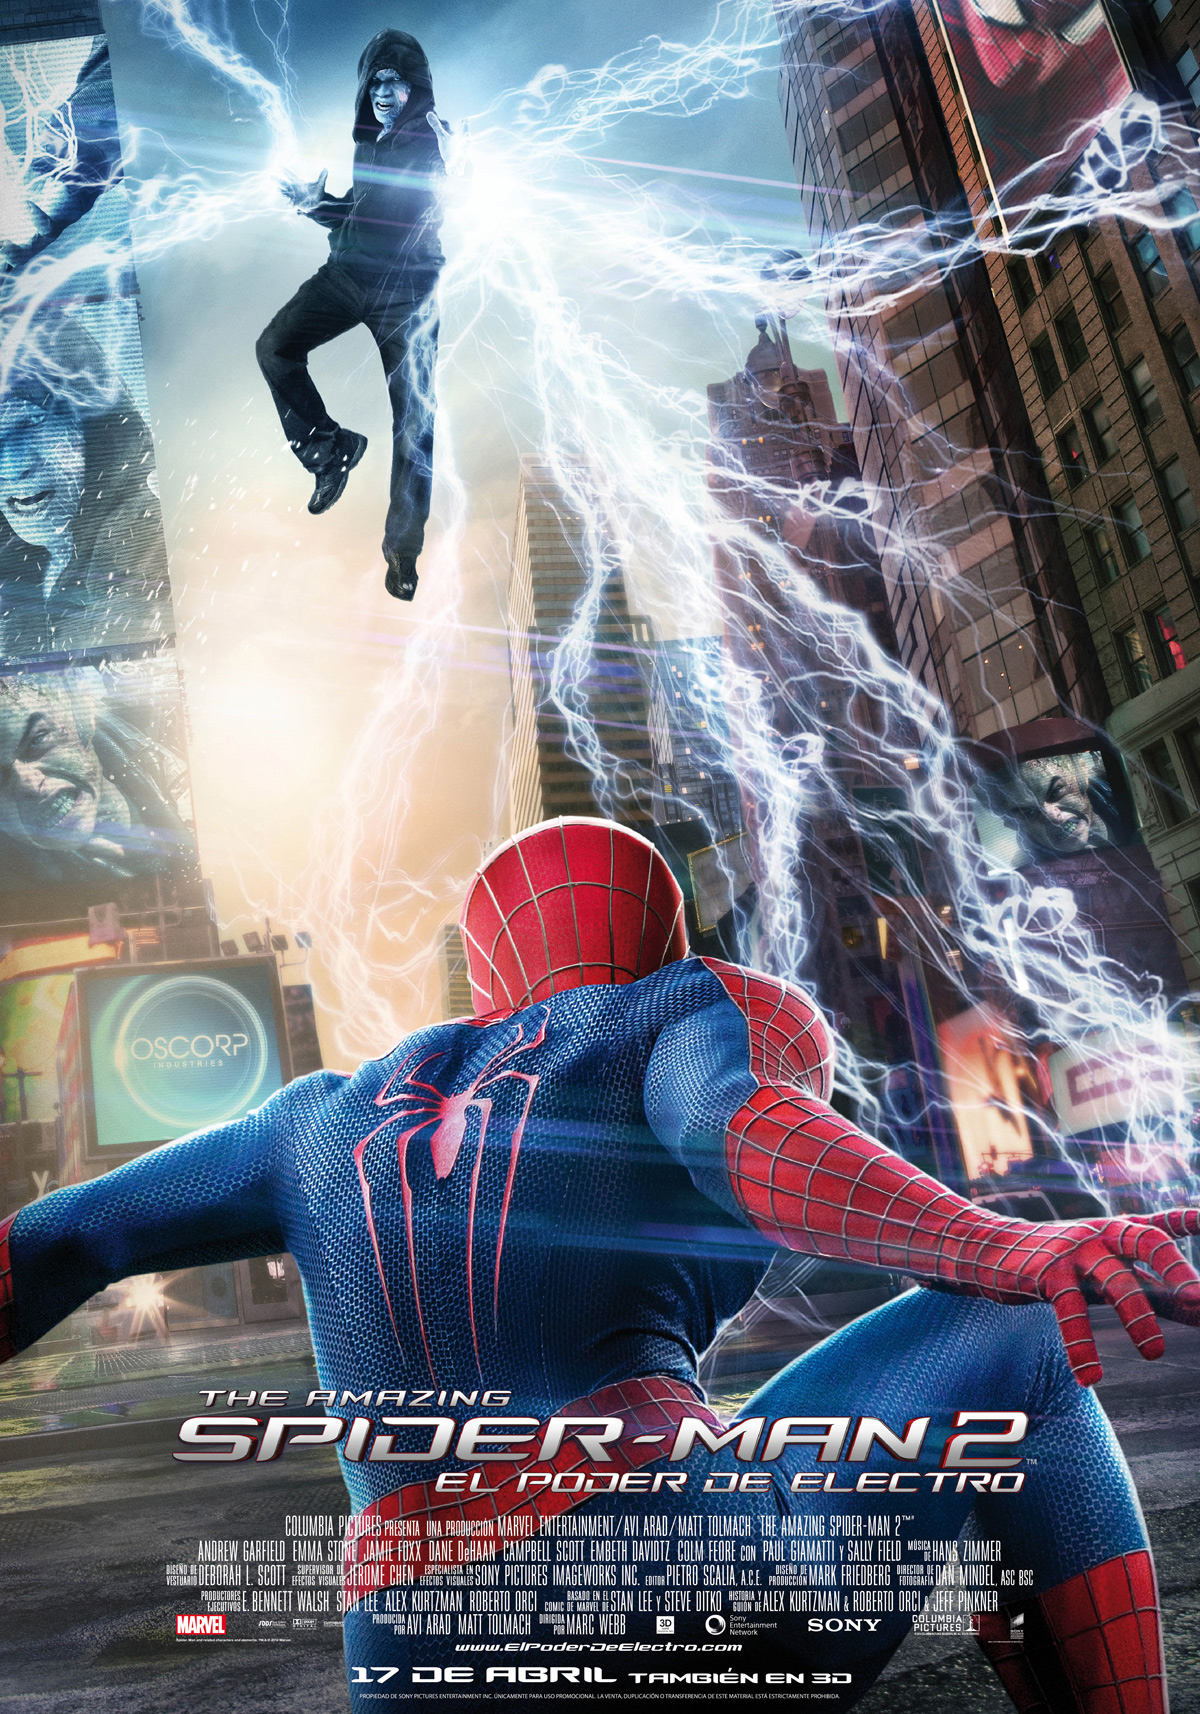 the amazing spider-man 2: el poder de electro - película 2014